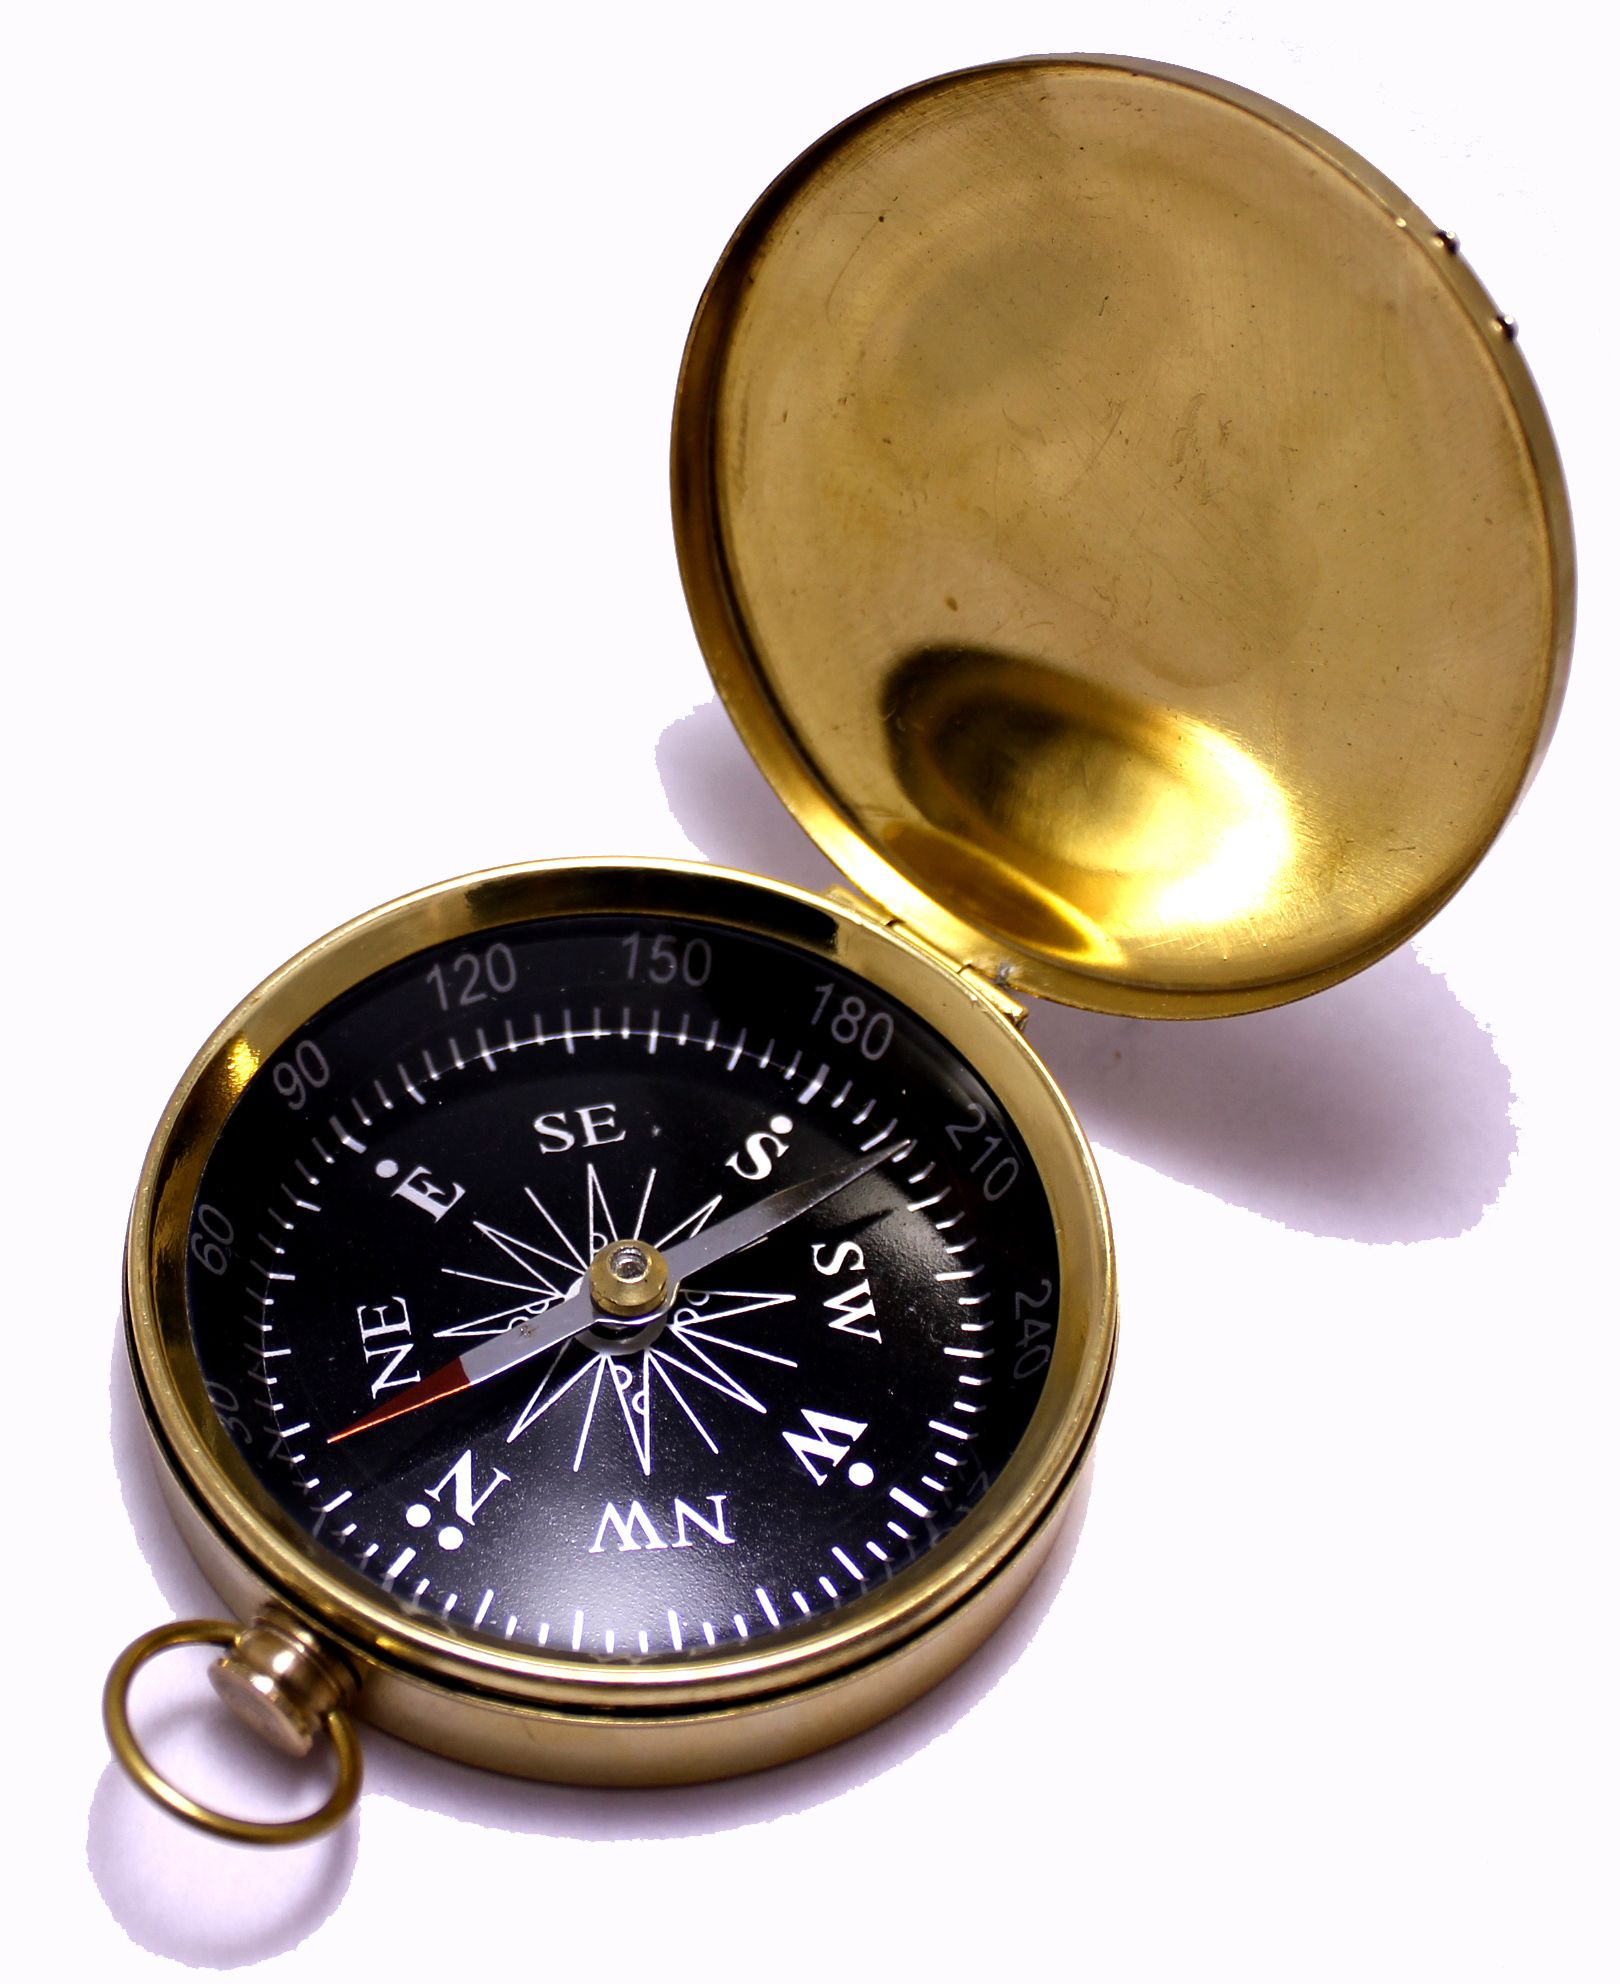 Nautical gifts for the home -  Sku No Compass Brass Nd_121a Brass Gentlemen S Compass 3 Brass Compasses Nautical Giftscompass Rosemagnetic Compasshome